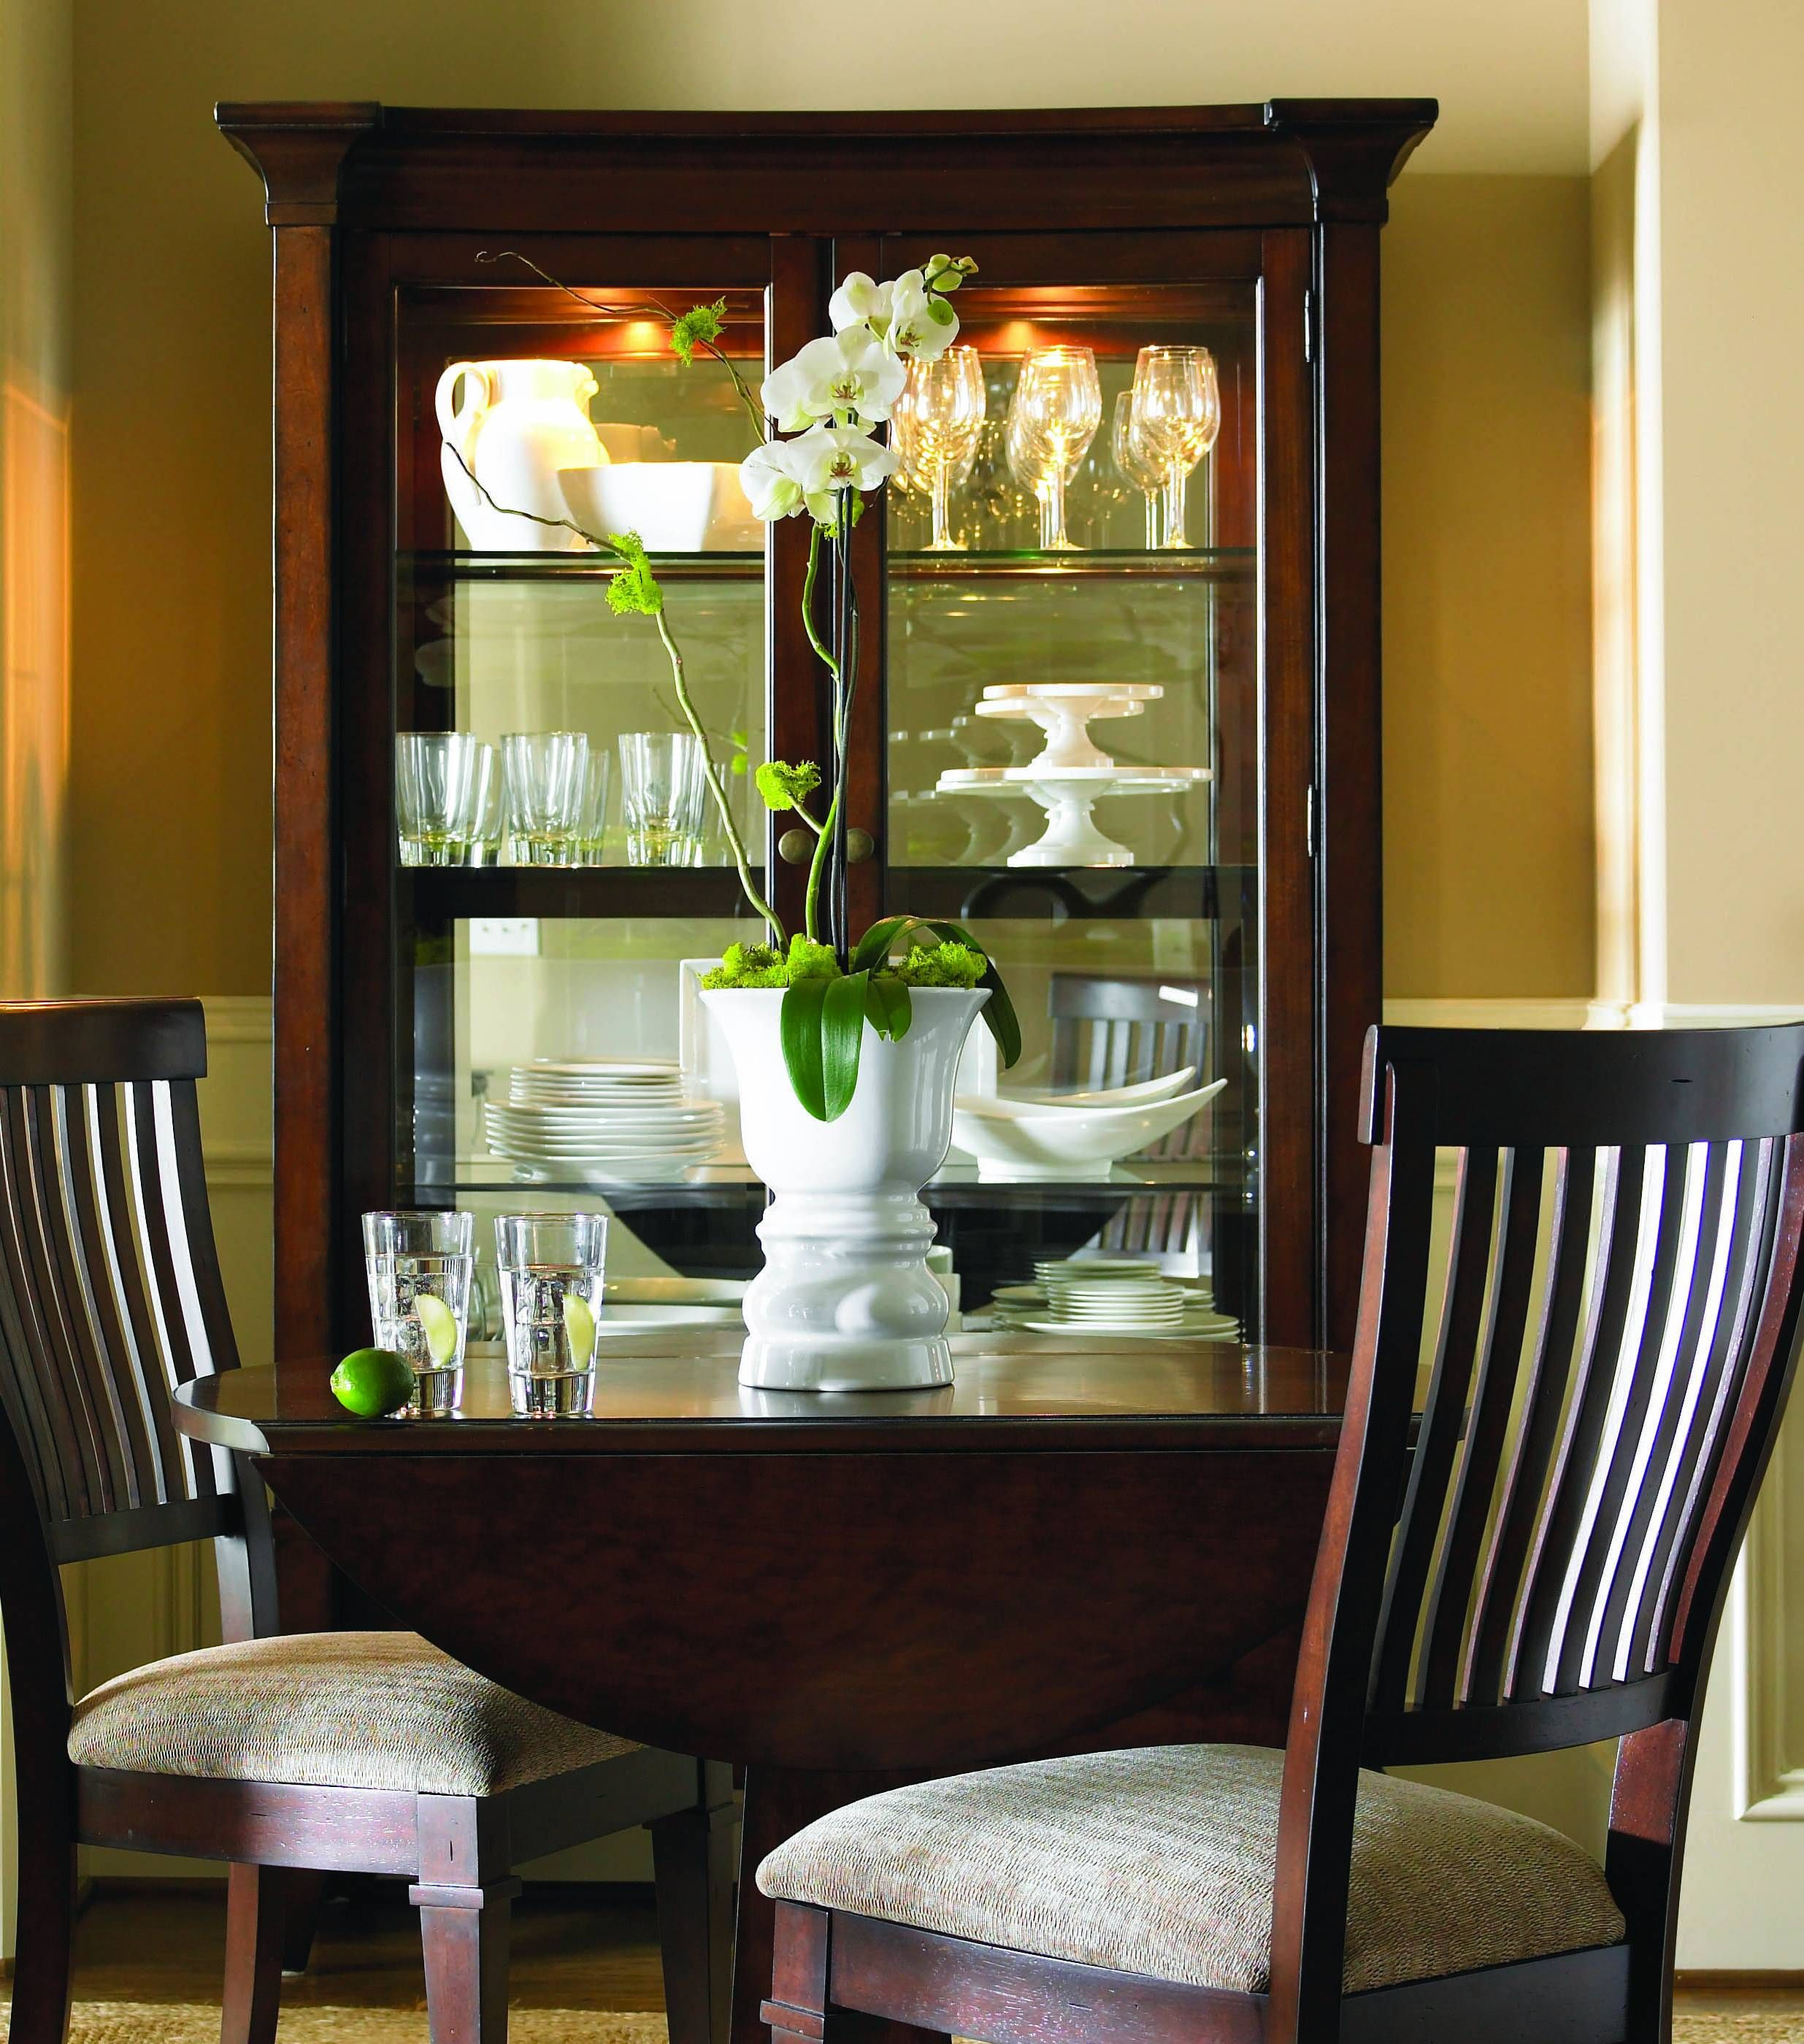 Modern China Cabinet Display Ideas Google Search Furniture Dining Table In Kitchen Dining Table